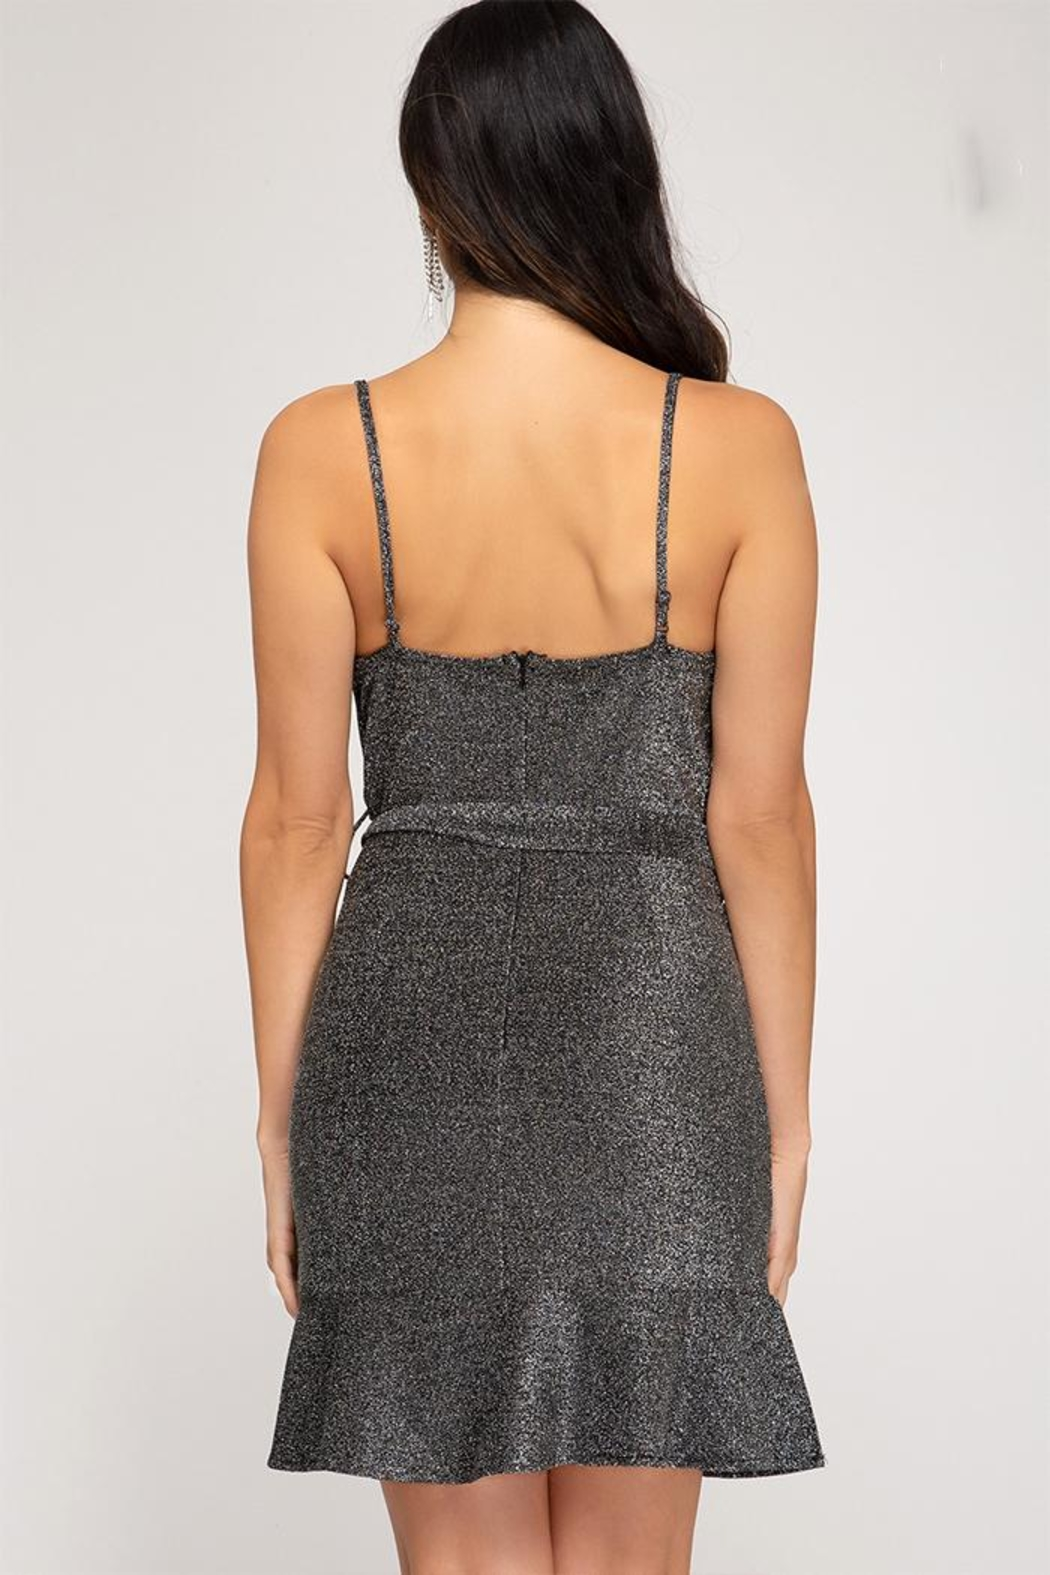 She + Sky Sparkly Cowl-Neck Dress - Front Full Image